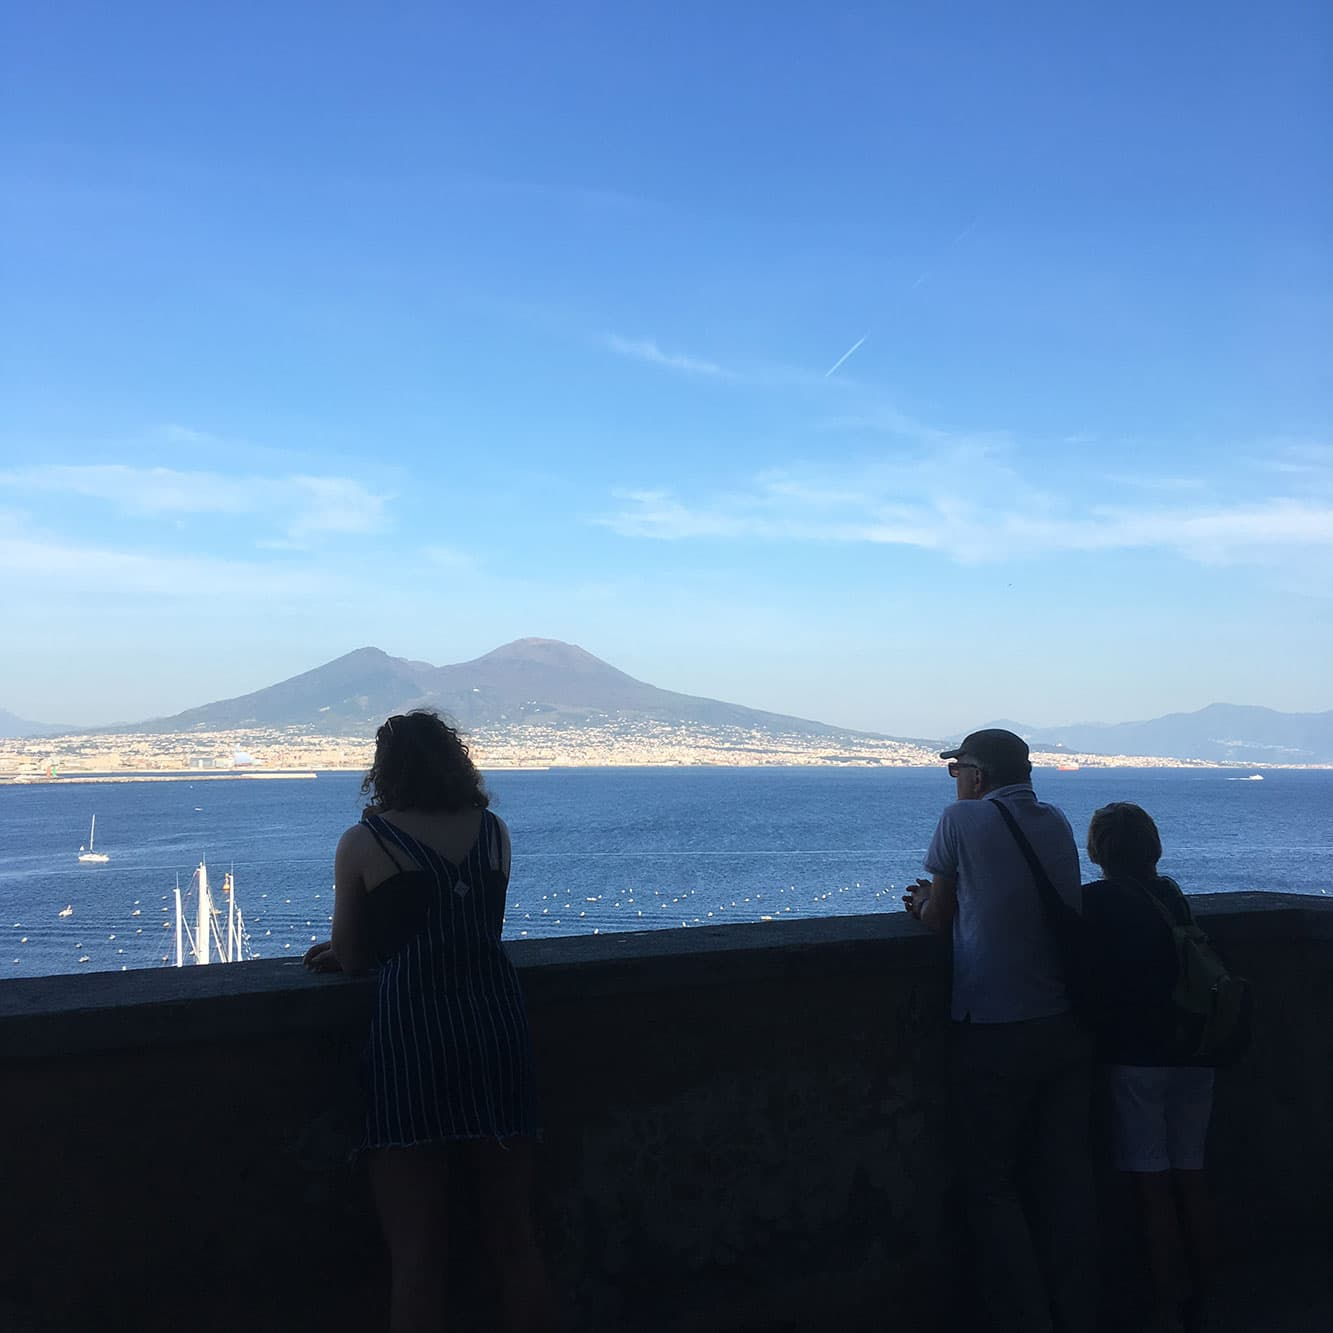 View of Vesuvius from the fort's roof